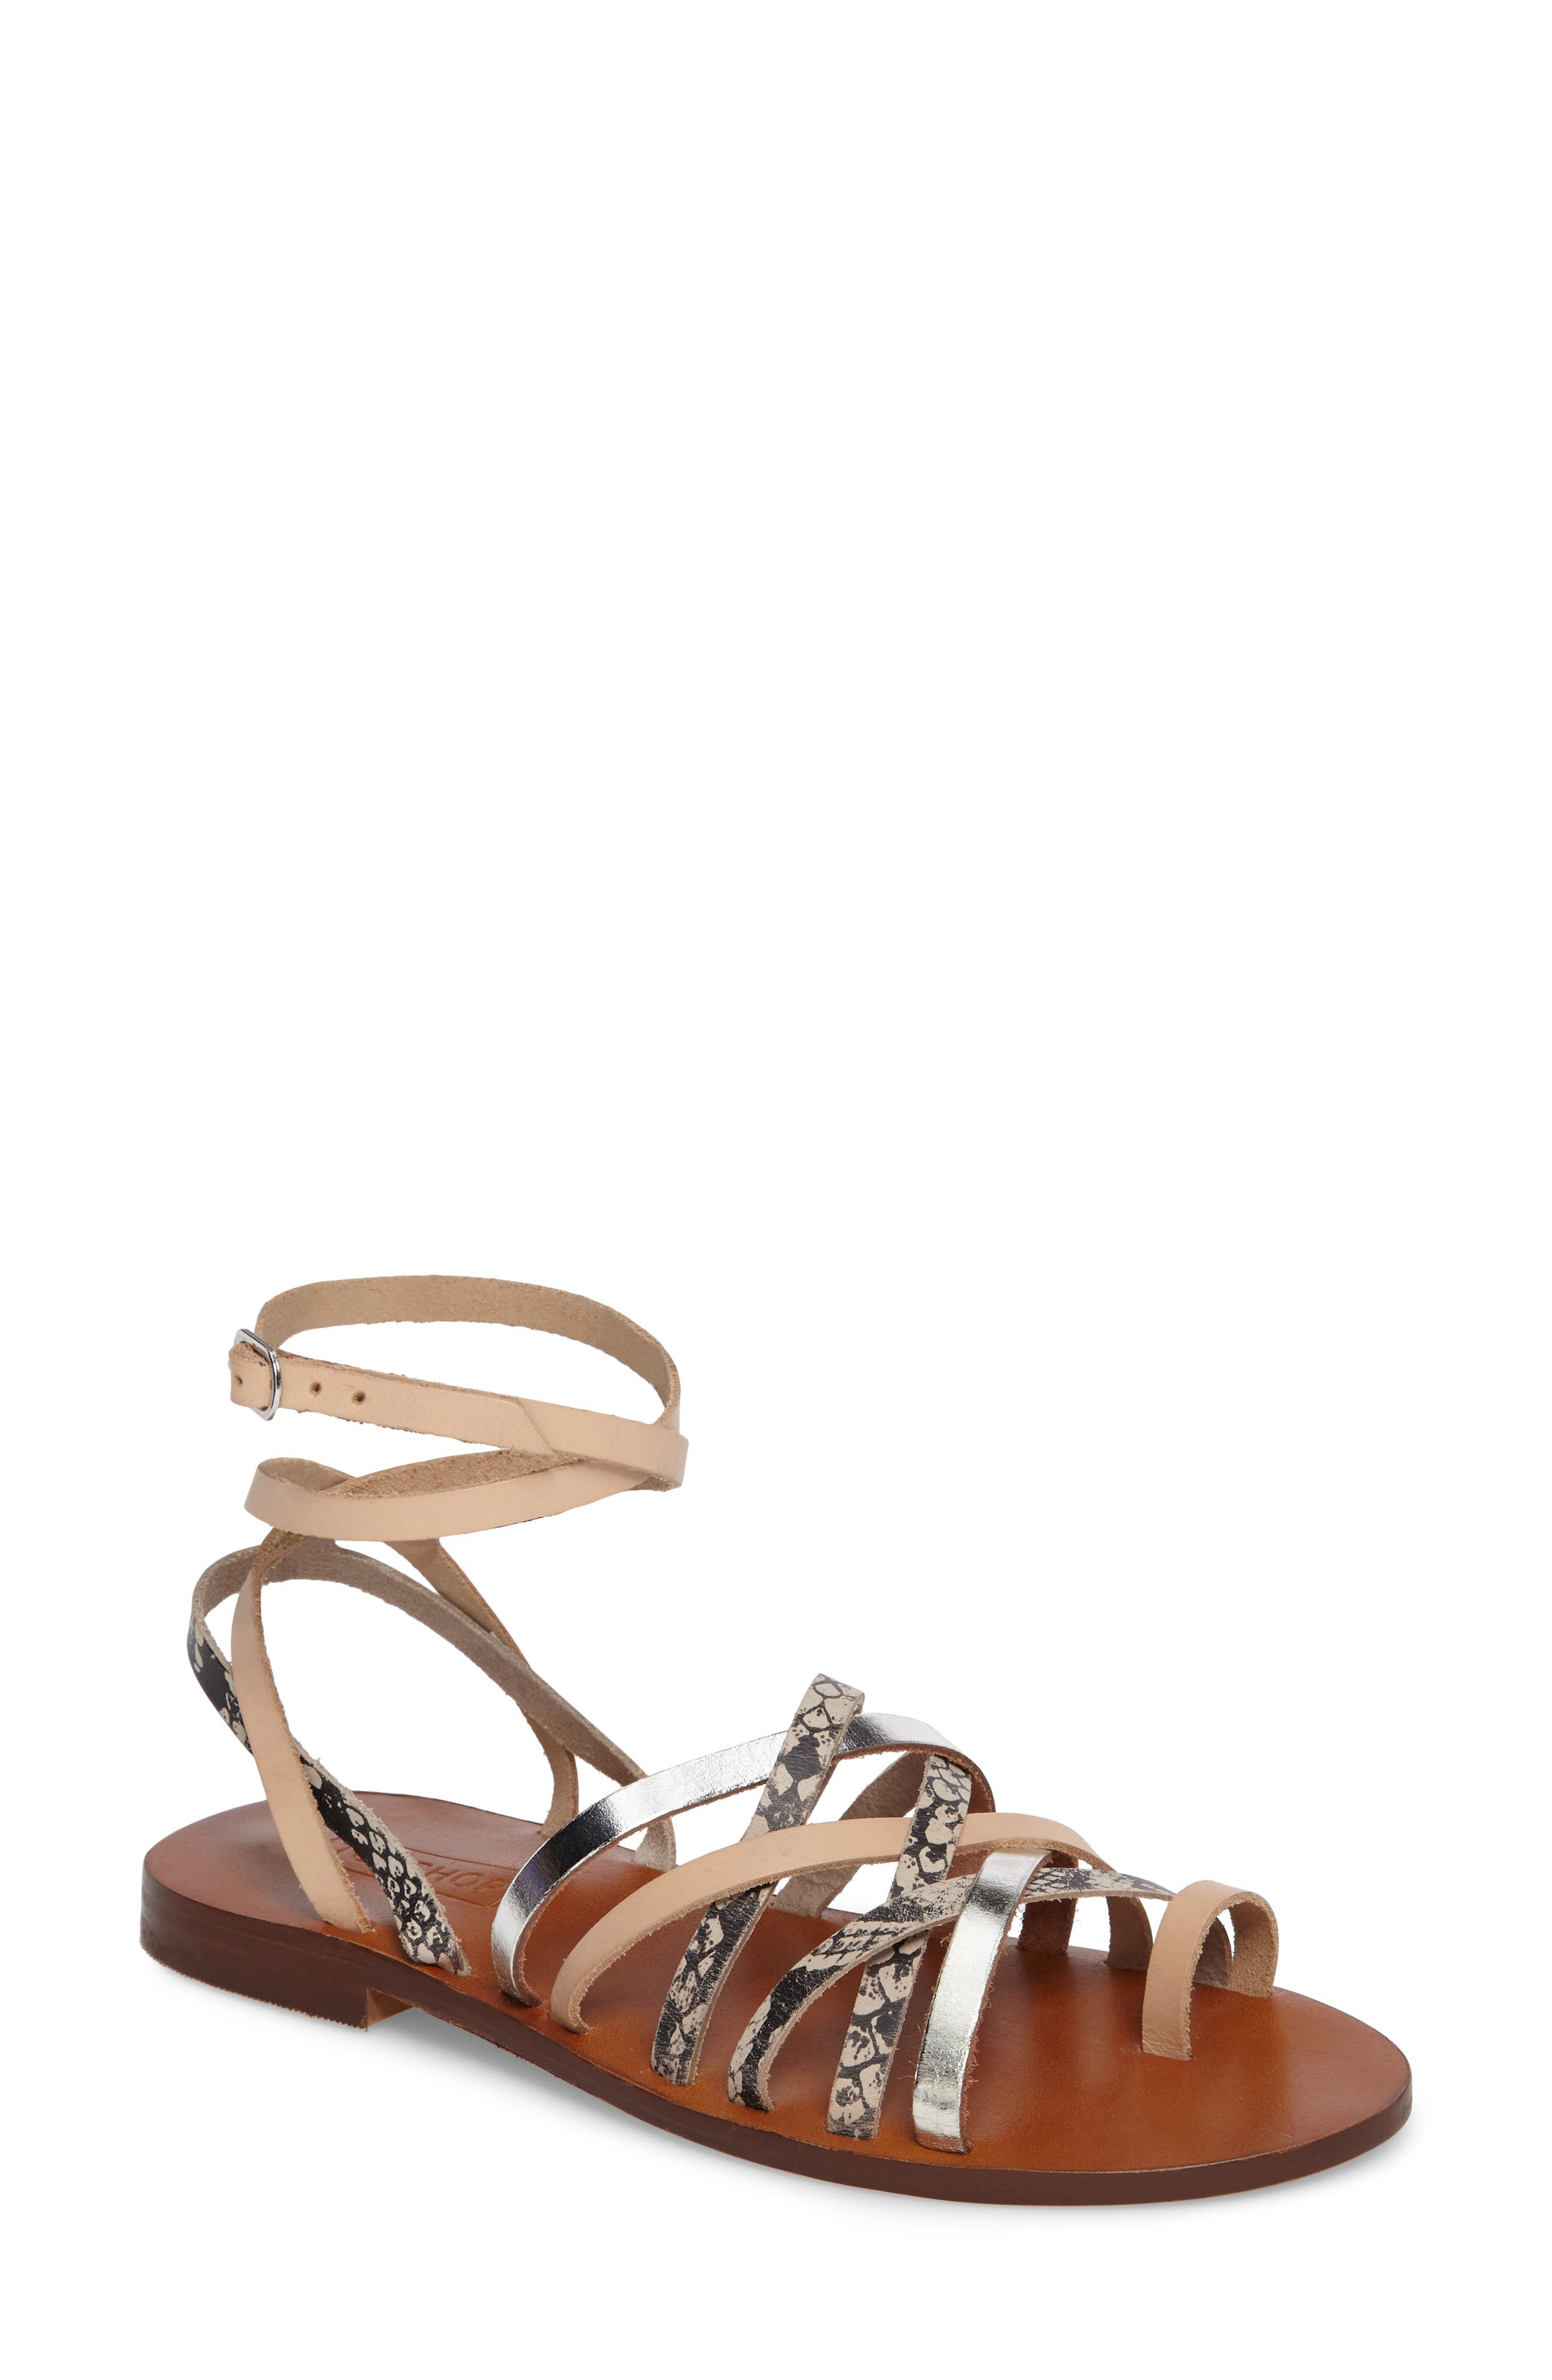 Fizzy Strappy Sandal,                             Main thumbnail 1, color,                             001